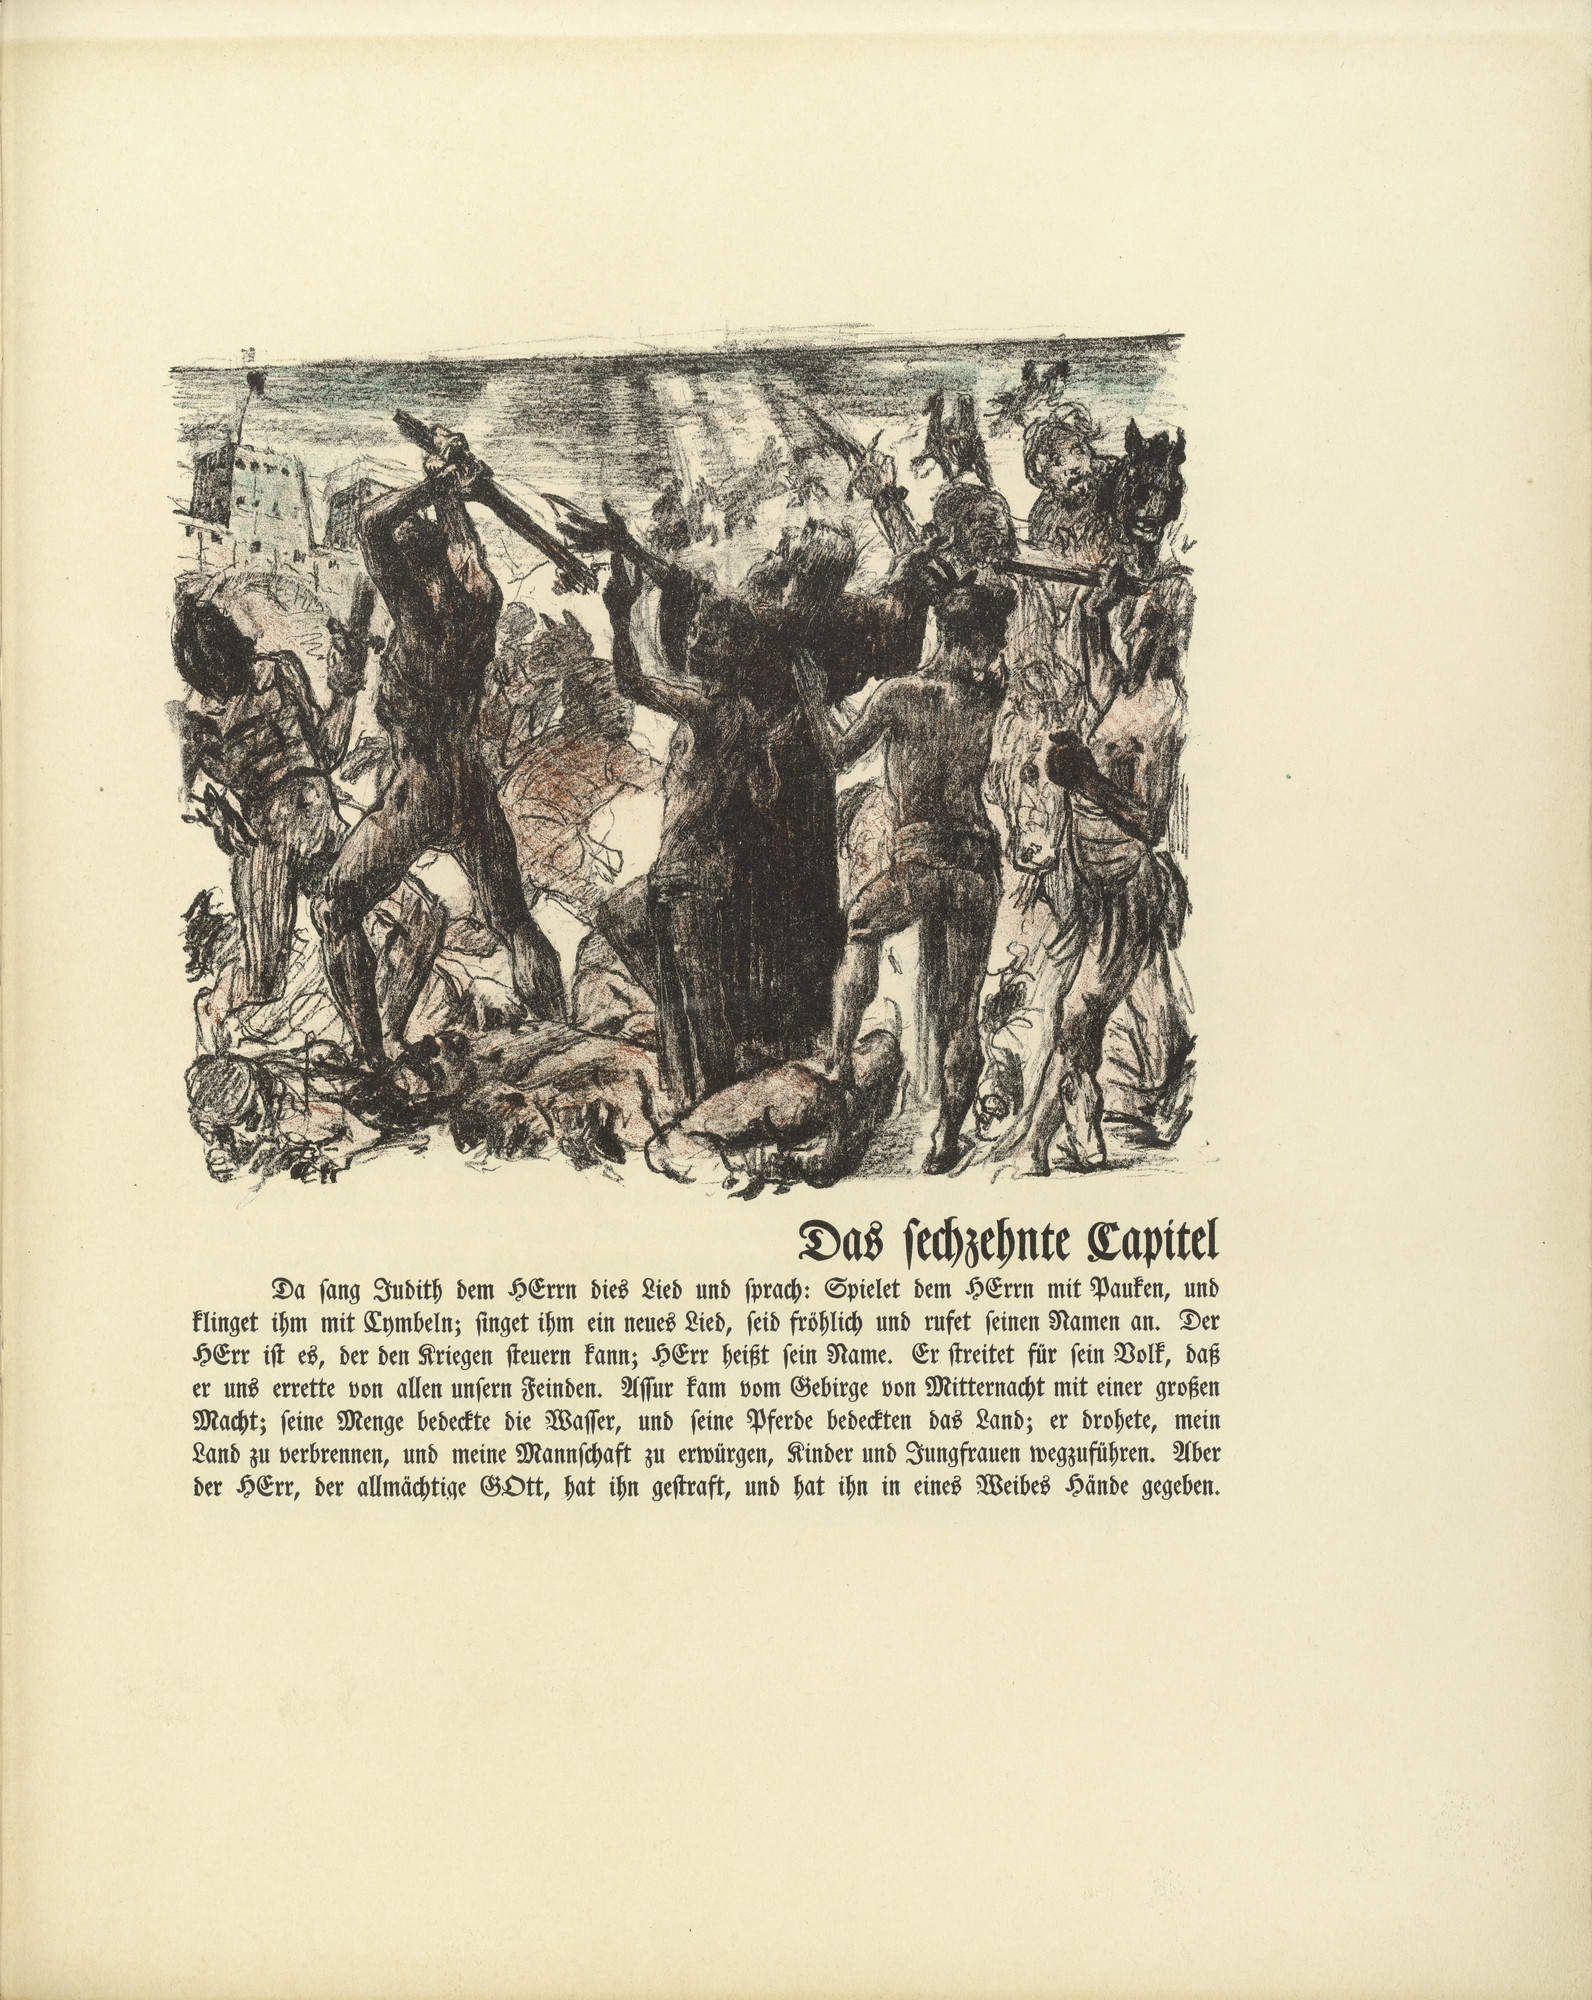 Lovis Corinth. The Battle of the Jews (Der Kampf der Juden) (plate, folio 32) from Das Buch Judith (The Book of Judith). 1910